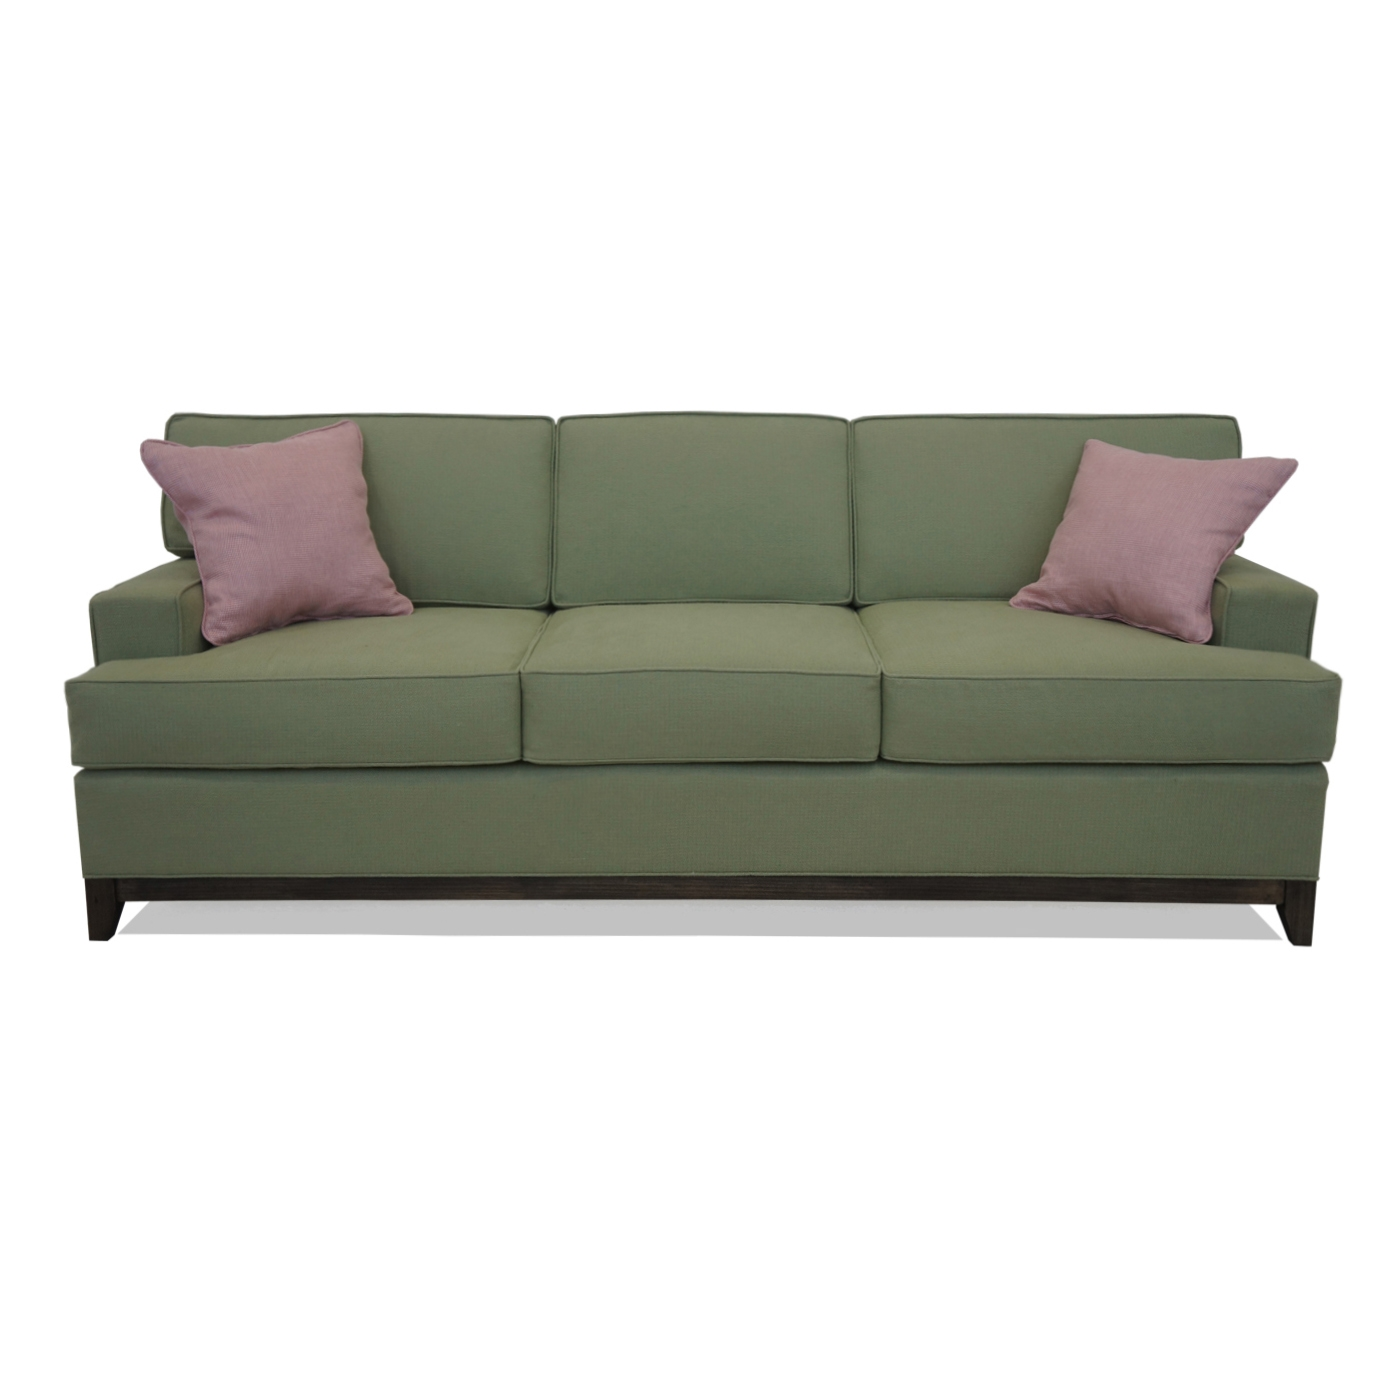 Eco friendly sectional sofa best quality sectional sofas for Sectional sofa eco friendly